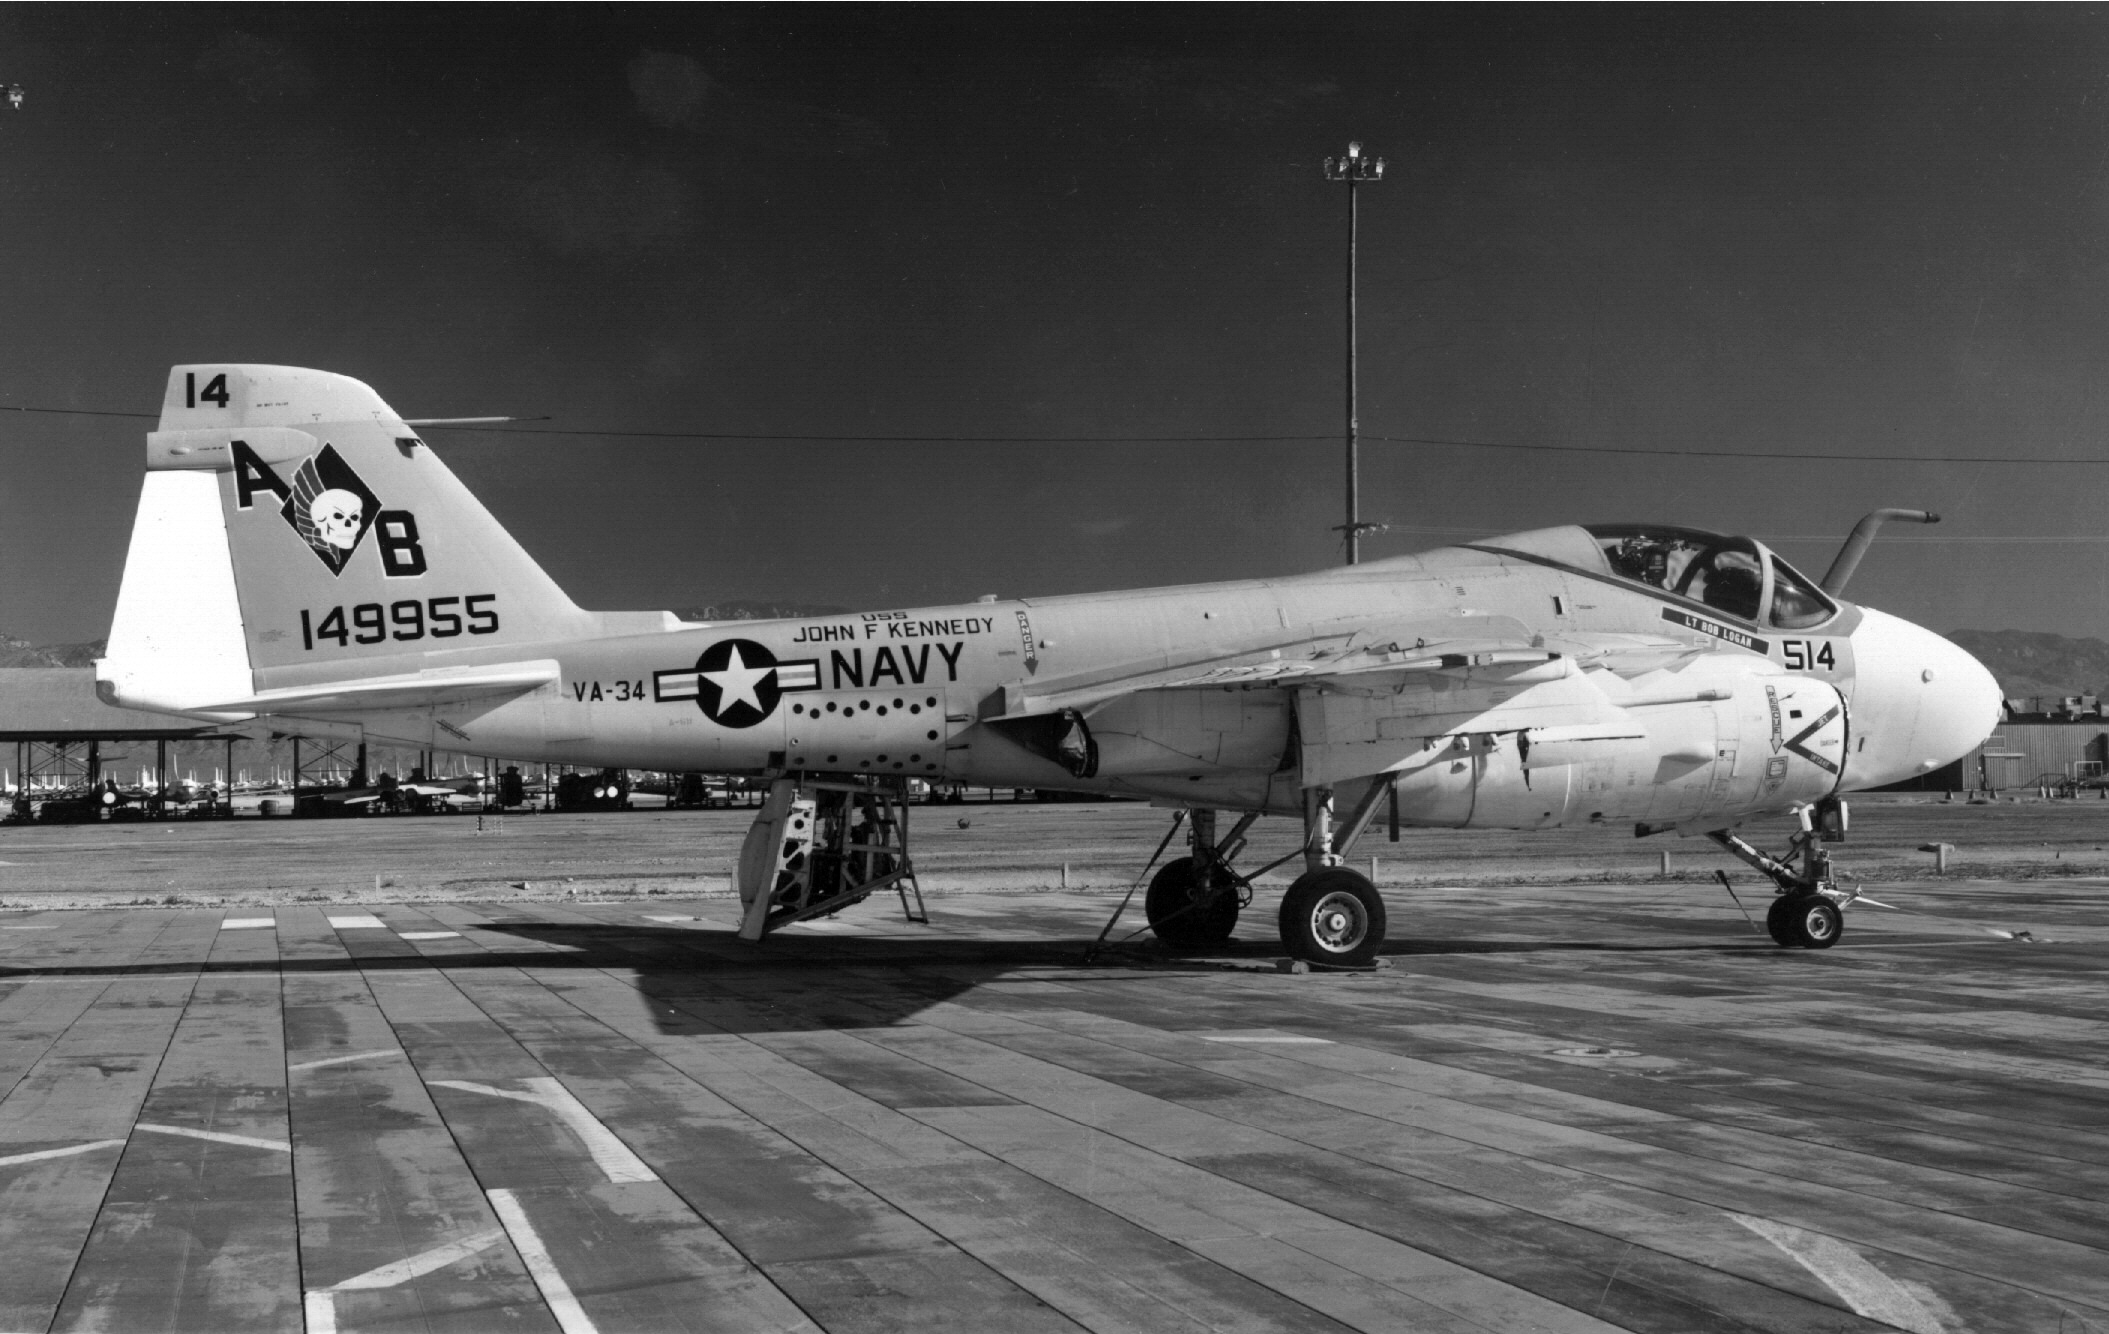 A-6B_VA-34_at_Davis-Monthan_AFB_1976.jpeg